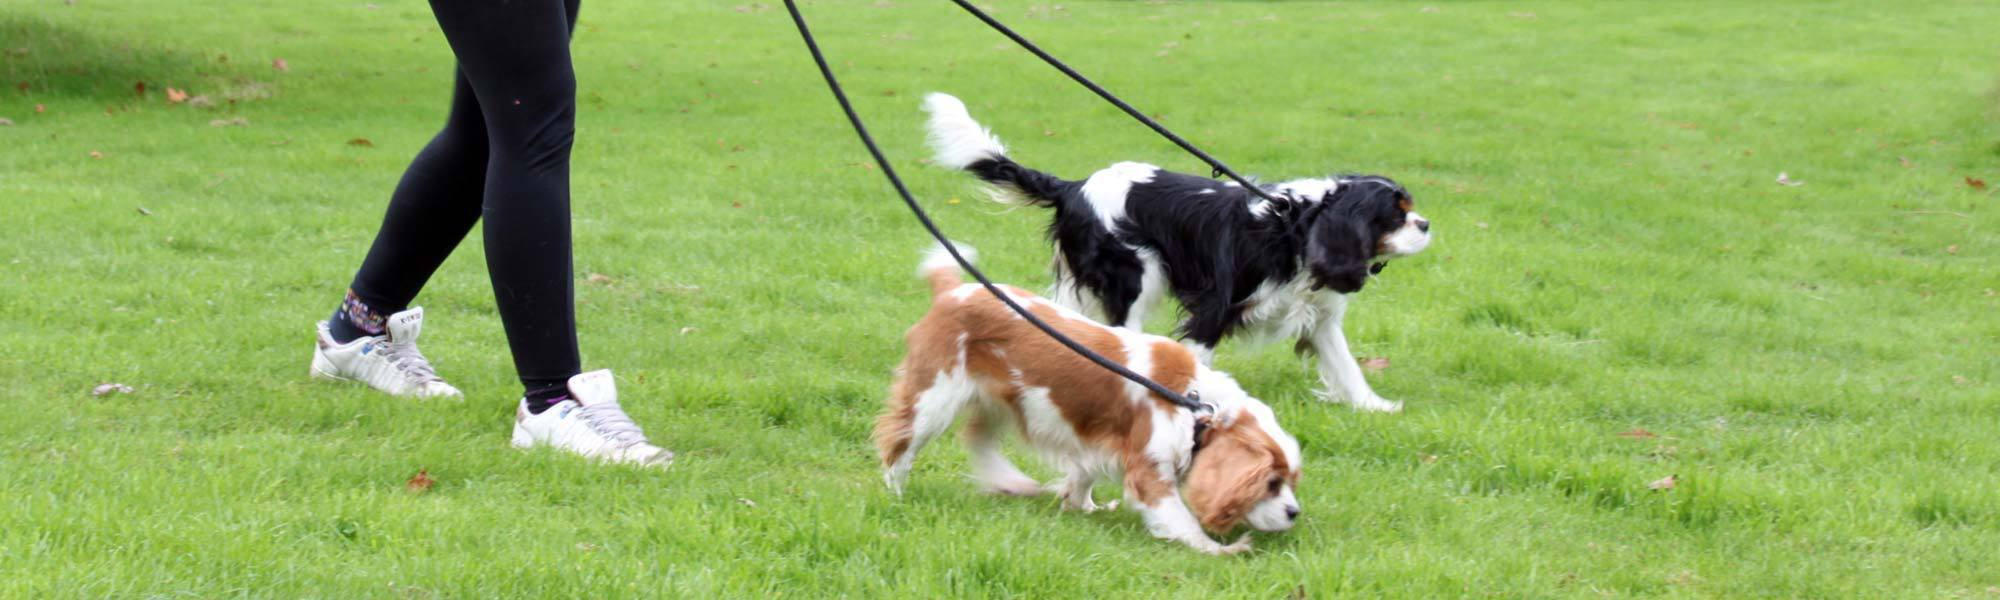 Two dogs being walked